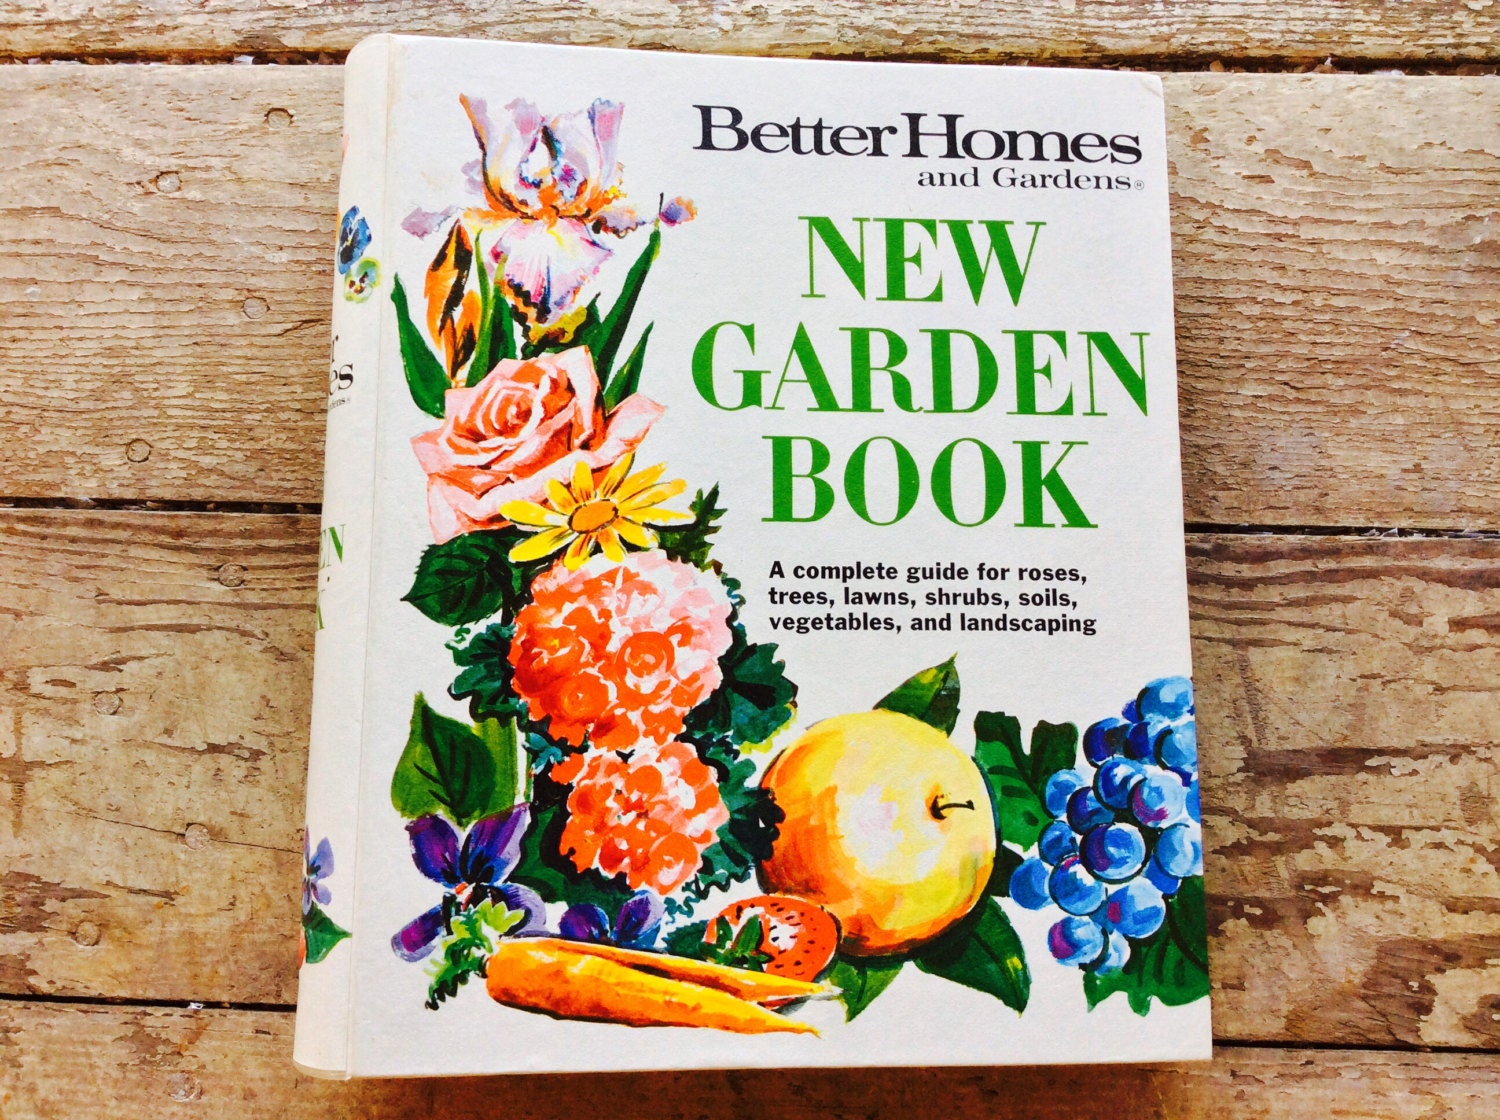 Vintage better homes and gardens garden book guide for roses - Better homes and gardens cookbook 1968 ...